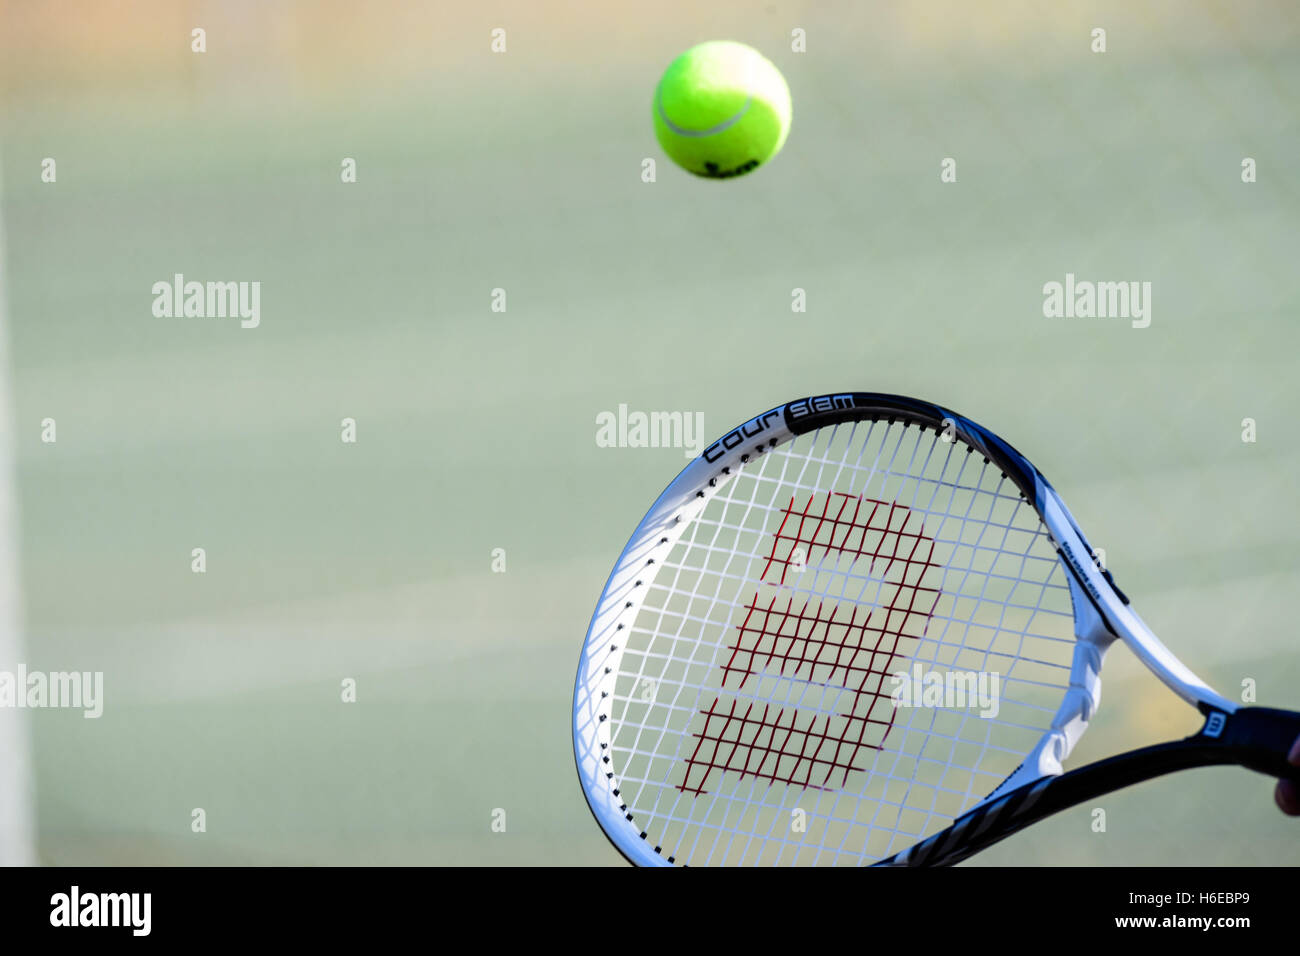 Frapper une balle de tennis racket Photo Stock